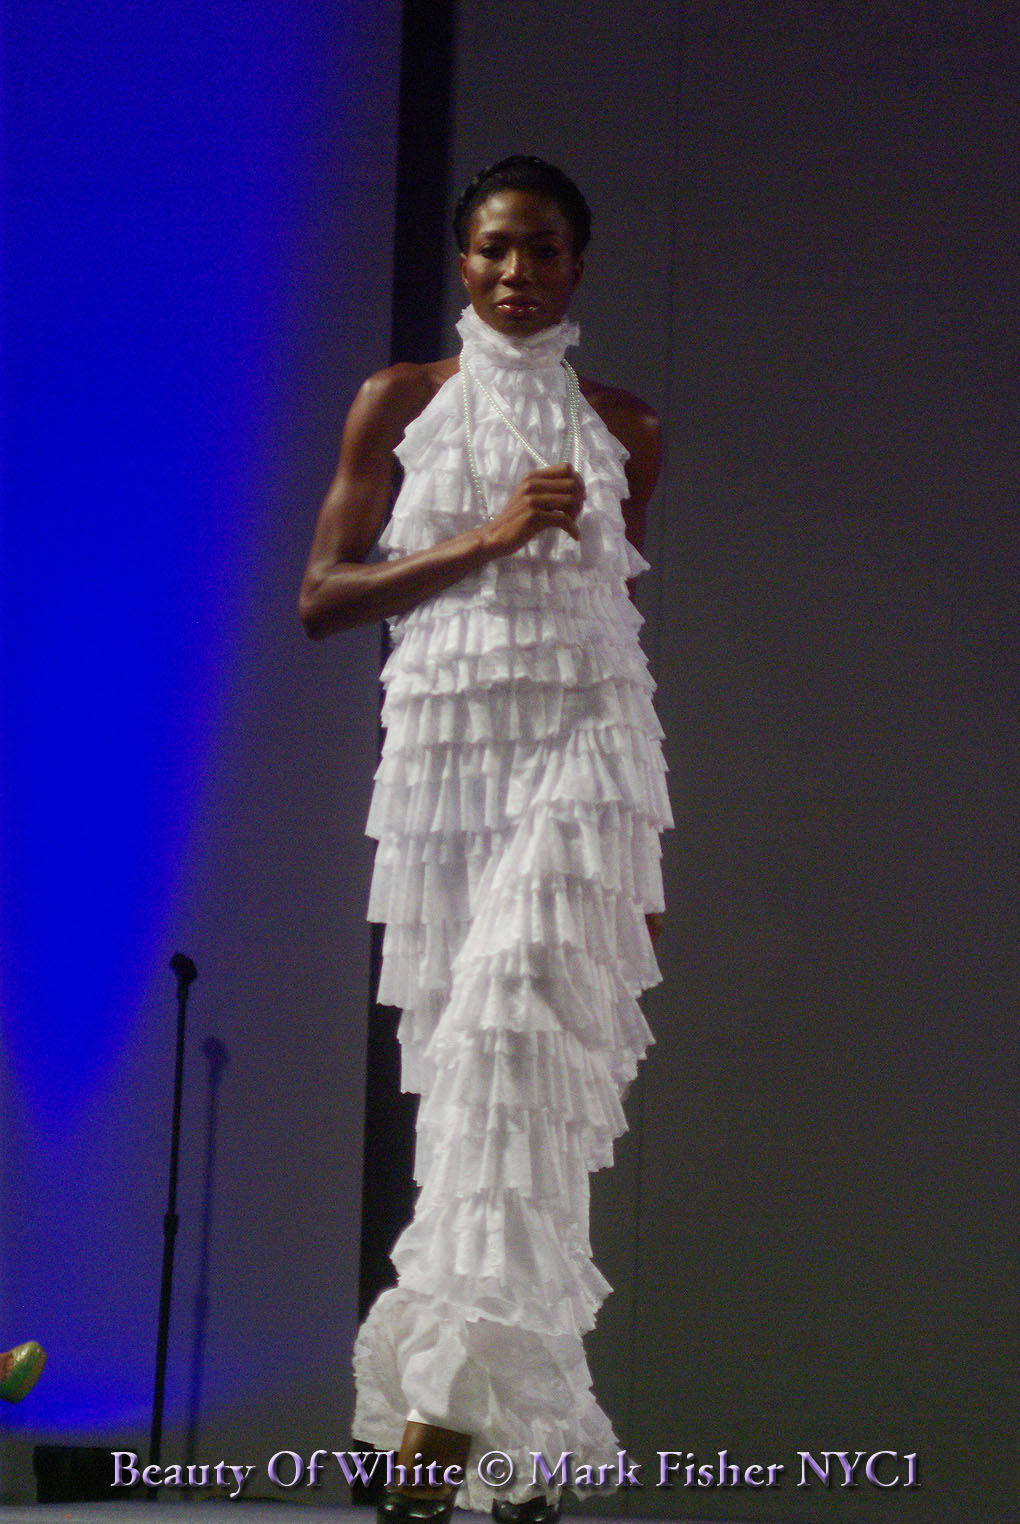 Mark fisher american photographer beauty of white for American haute couture designers